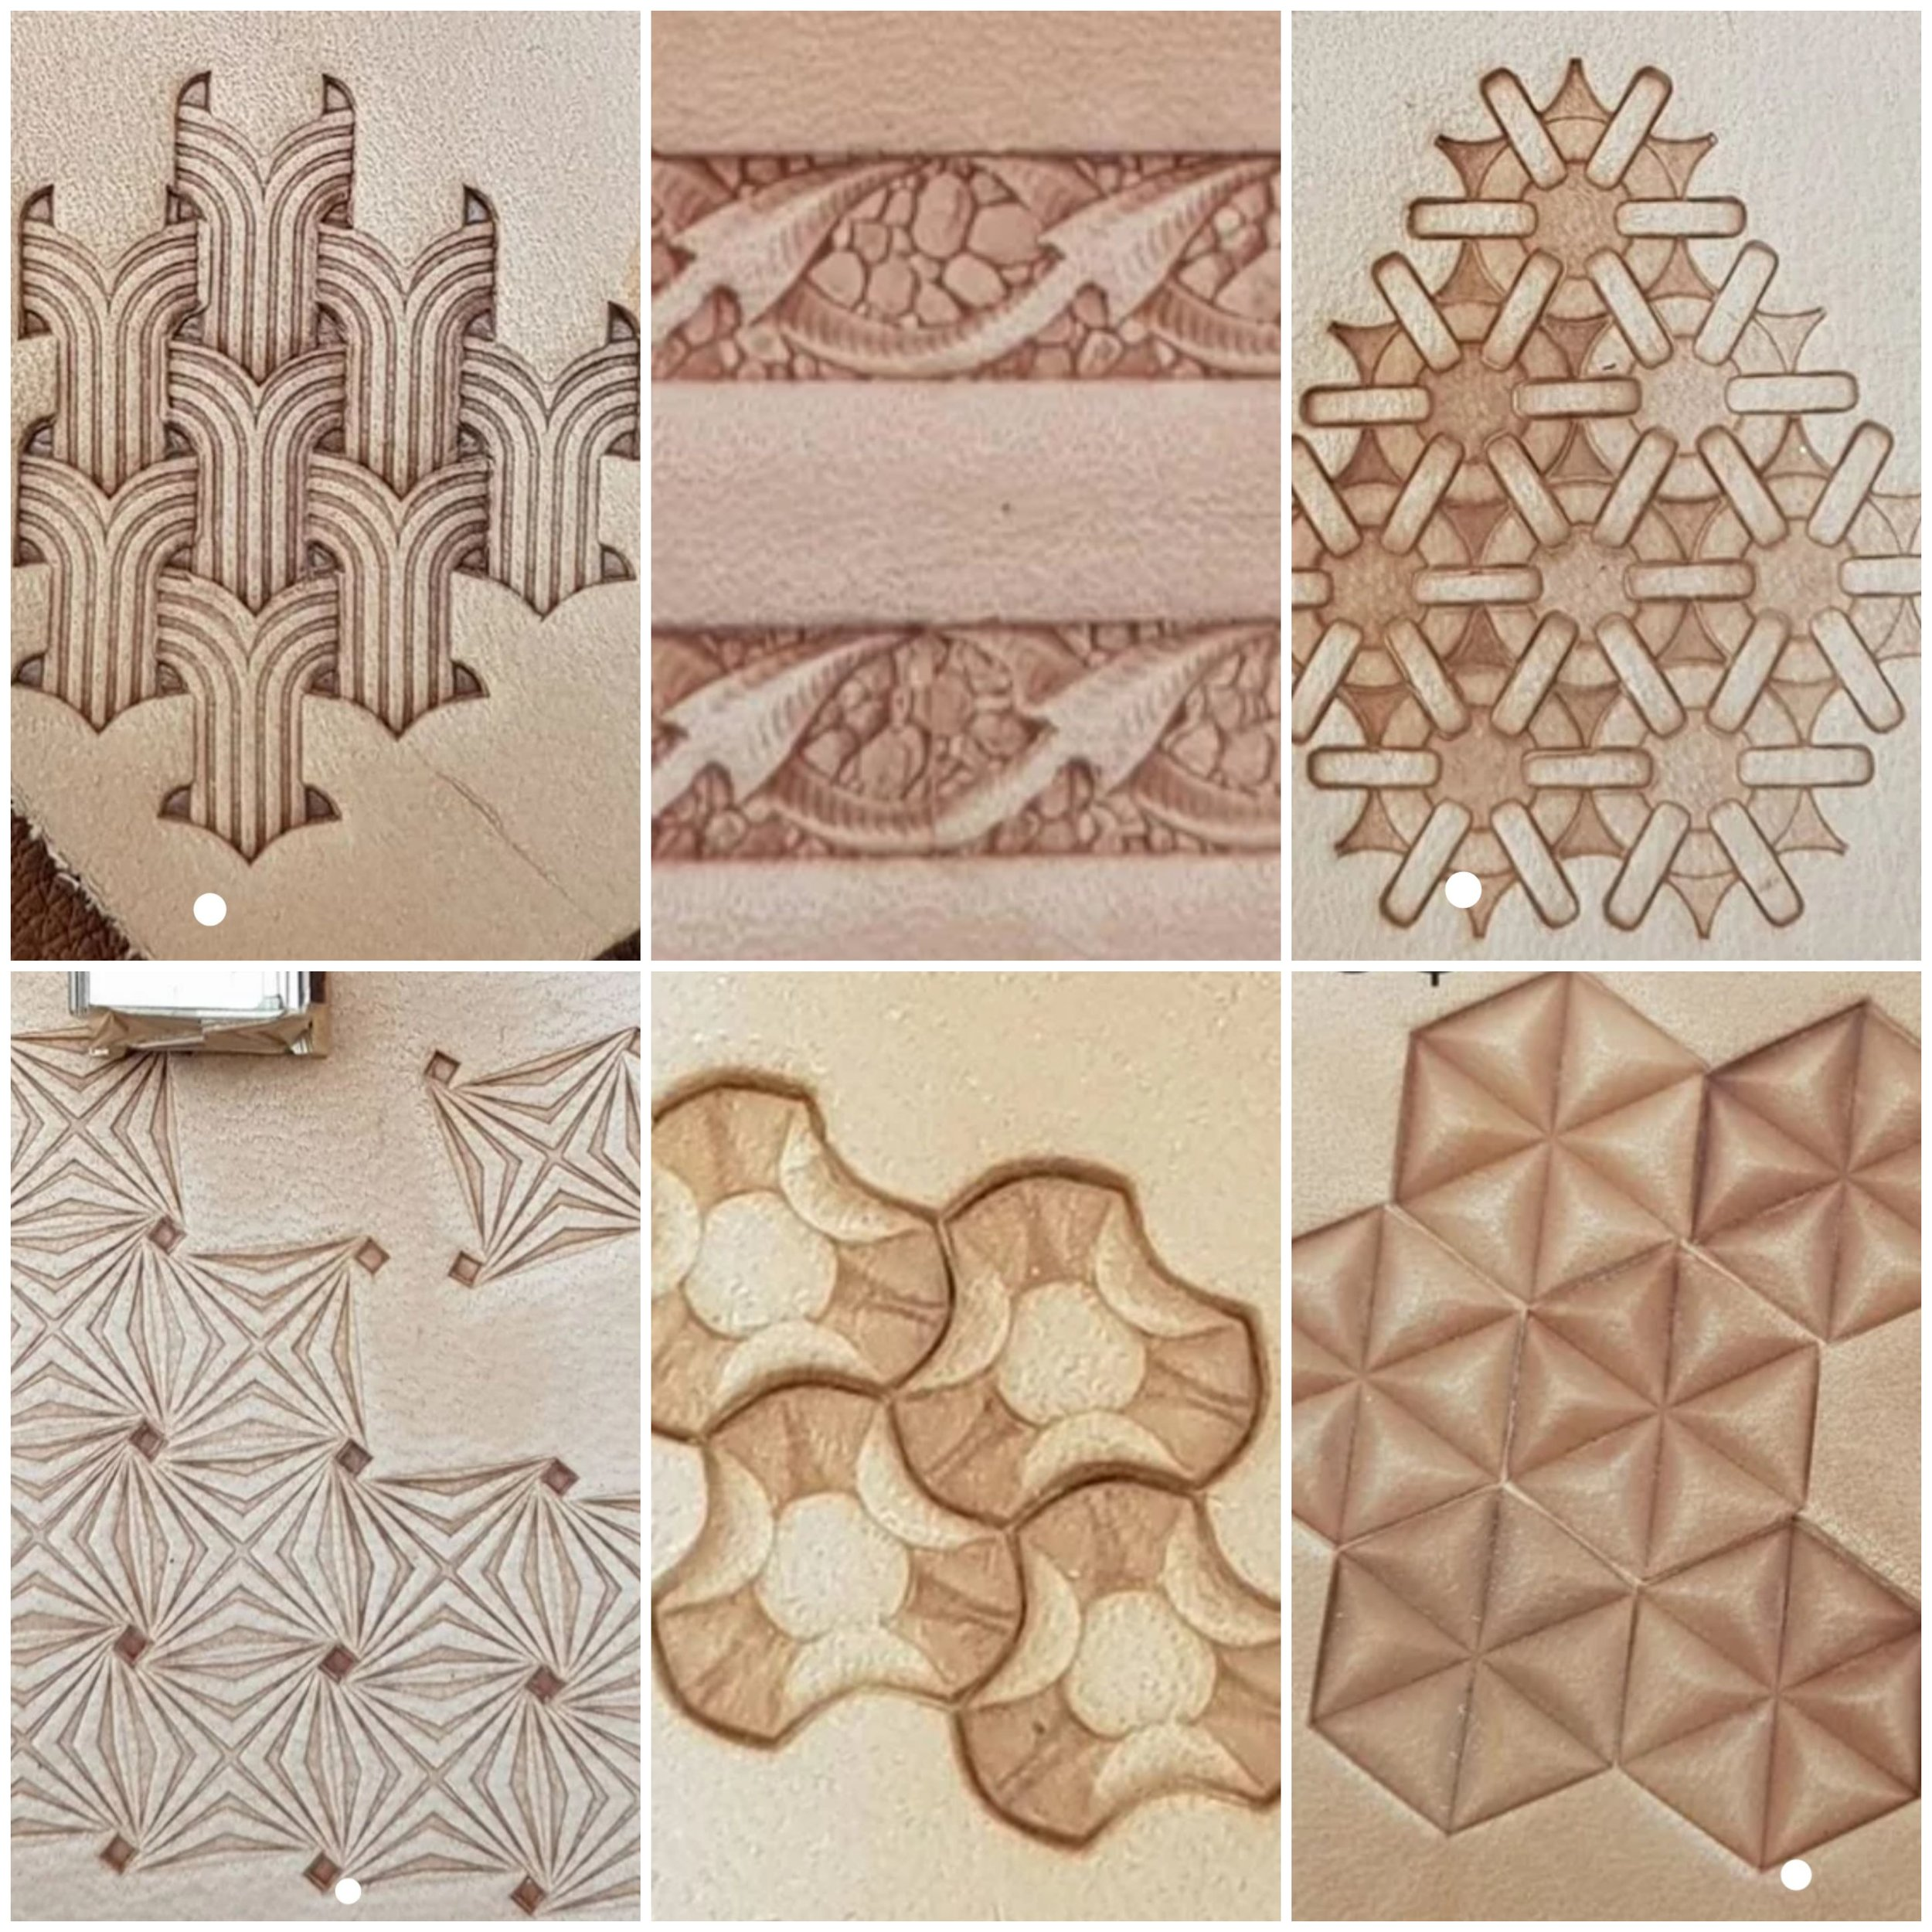 Stamp Batch 2 - Please quote batch number with stamp number.1. Intertwined Waterfalls2. Dragon Tails3. Intertwined Loops4. Twilight Zone Stars5. Flower Petals6. Concave Stars